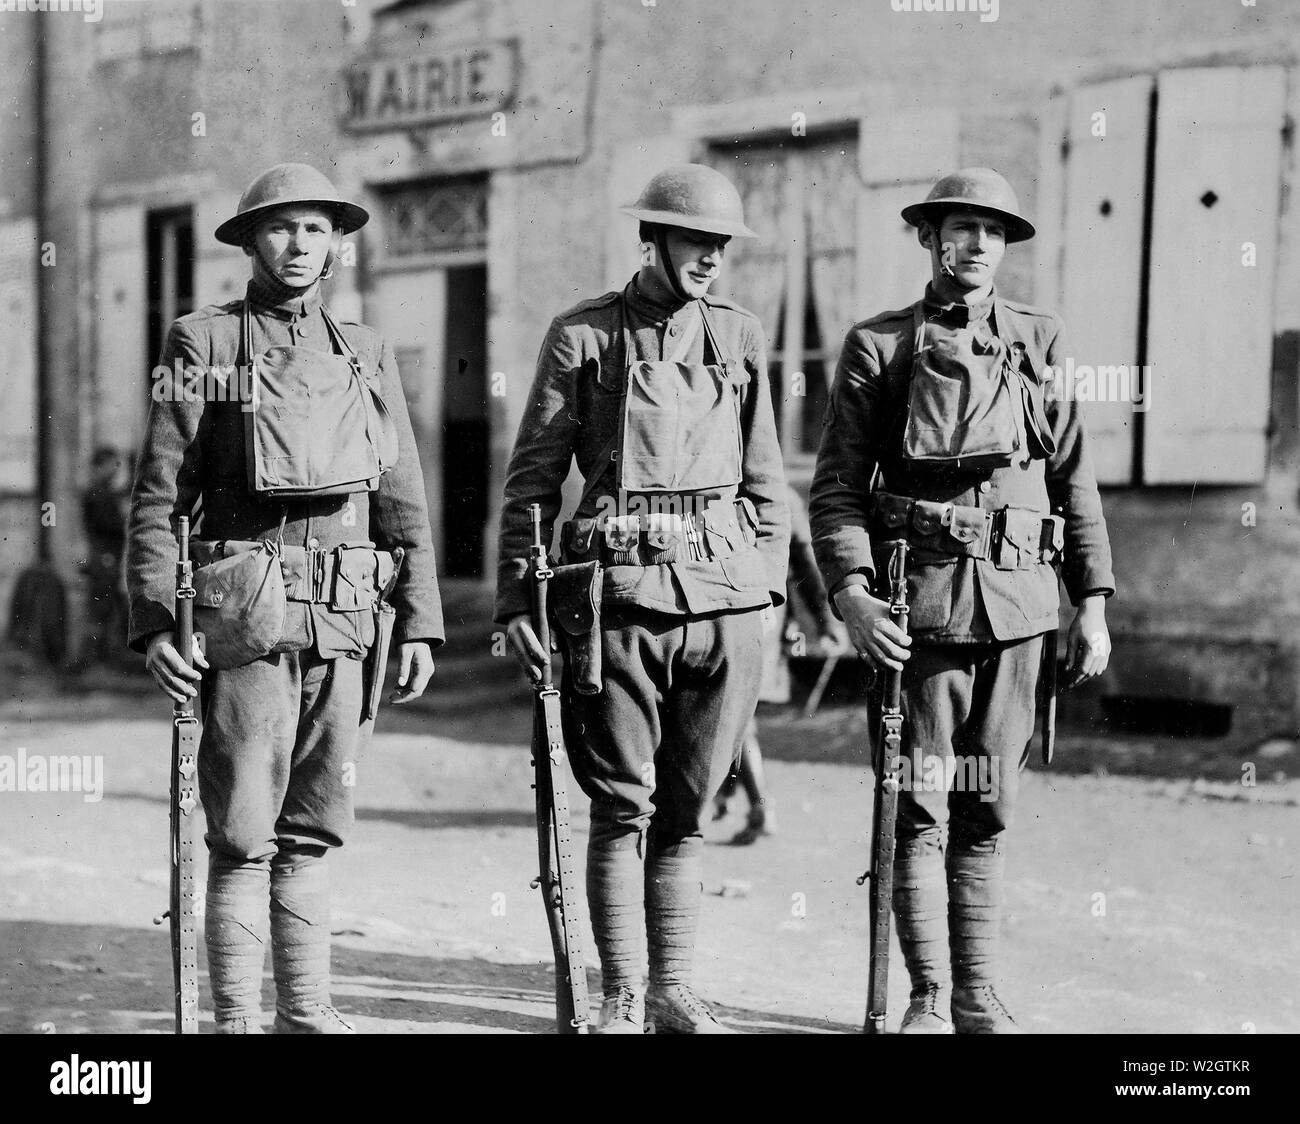 A Successful Patrol- Three men of a patrol of 5 who met a German patrol of 10 men, with no loss- The German losses were 2 killed, 2 wounded, and 2 captured ca. March 1918 in Glenville France - Stock Image